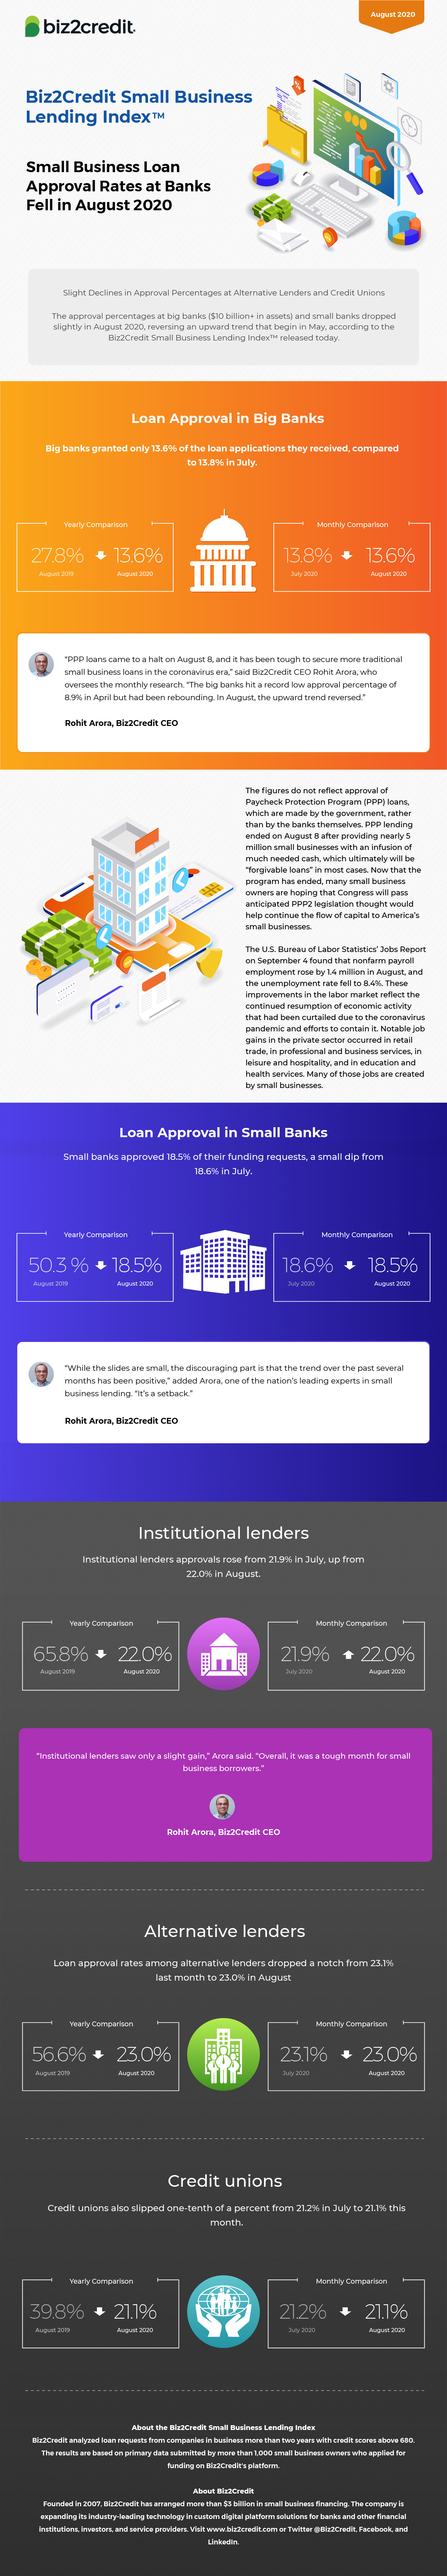 August 2020 Lending Index Infographic